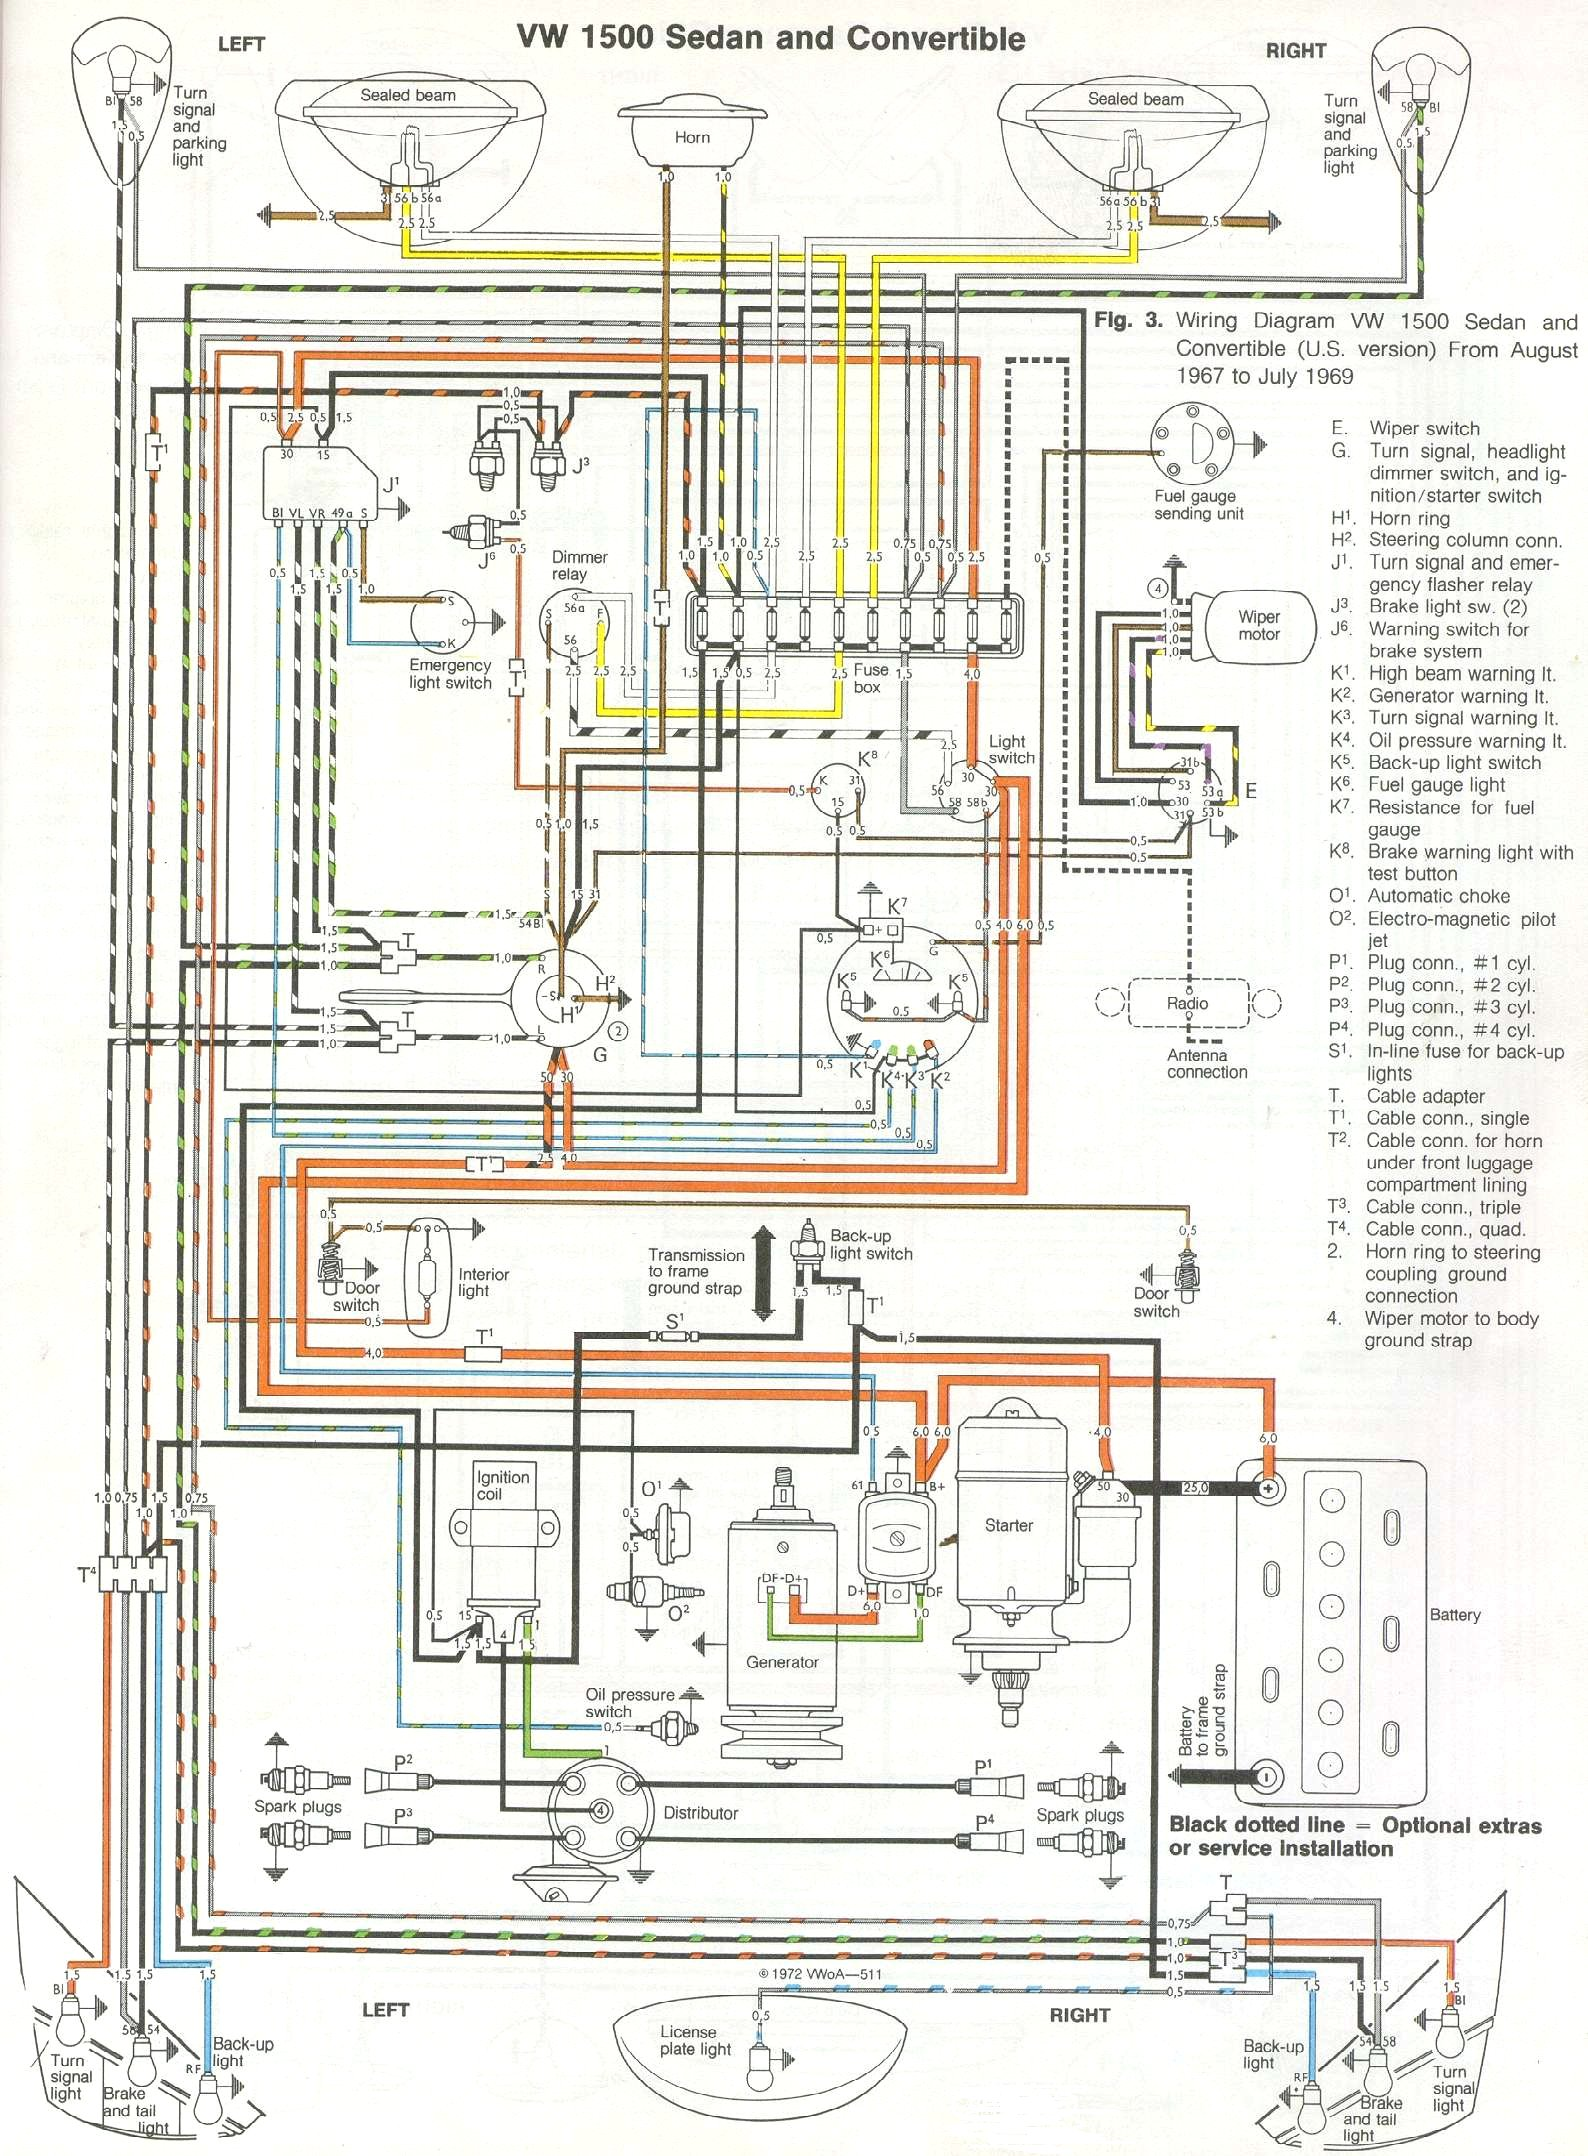 1967 vw wiring diagram radio 3 15 stromoeko de \u20221969 vw bug radio wiring diagrams wiring diagram rh 91 malibustixx de 1968 vw wiring diagram 73 vw beetle wiring diagram